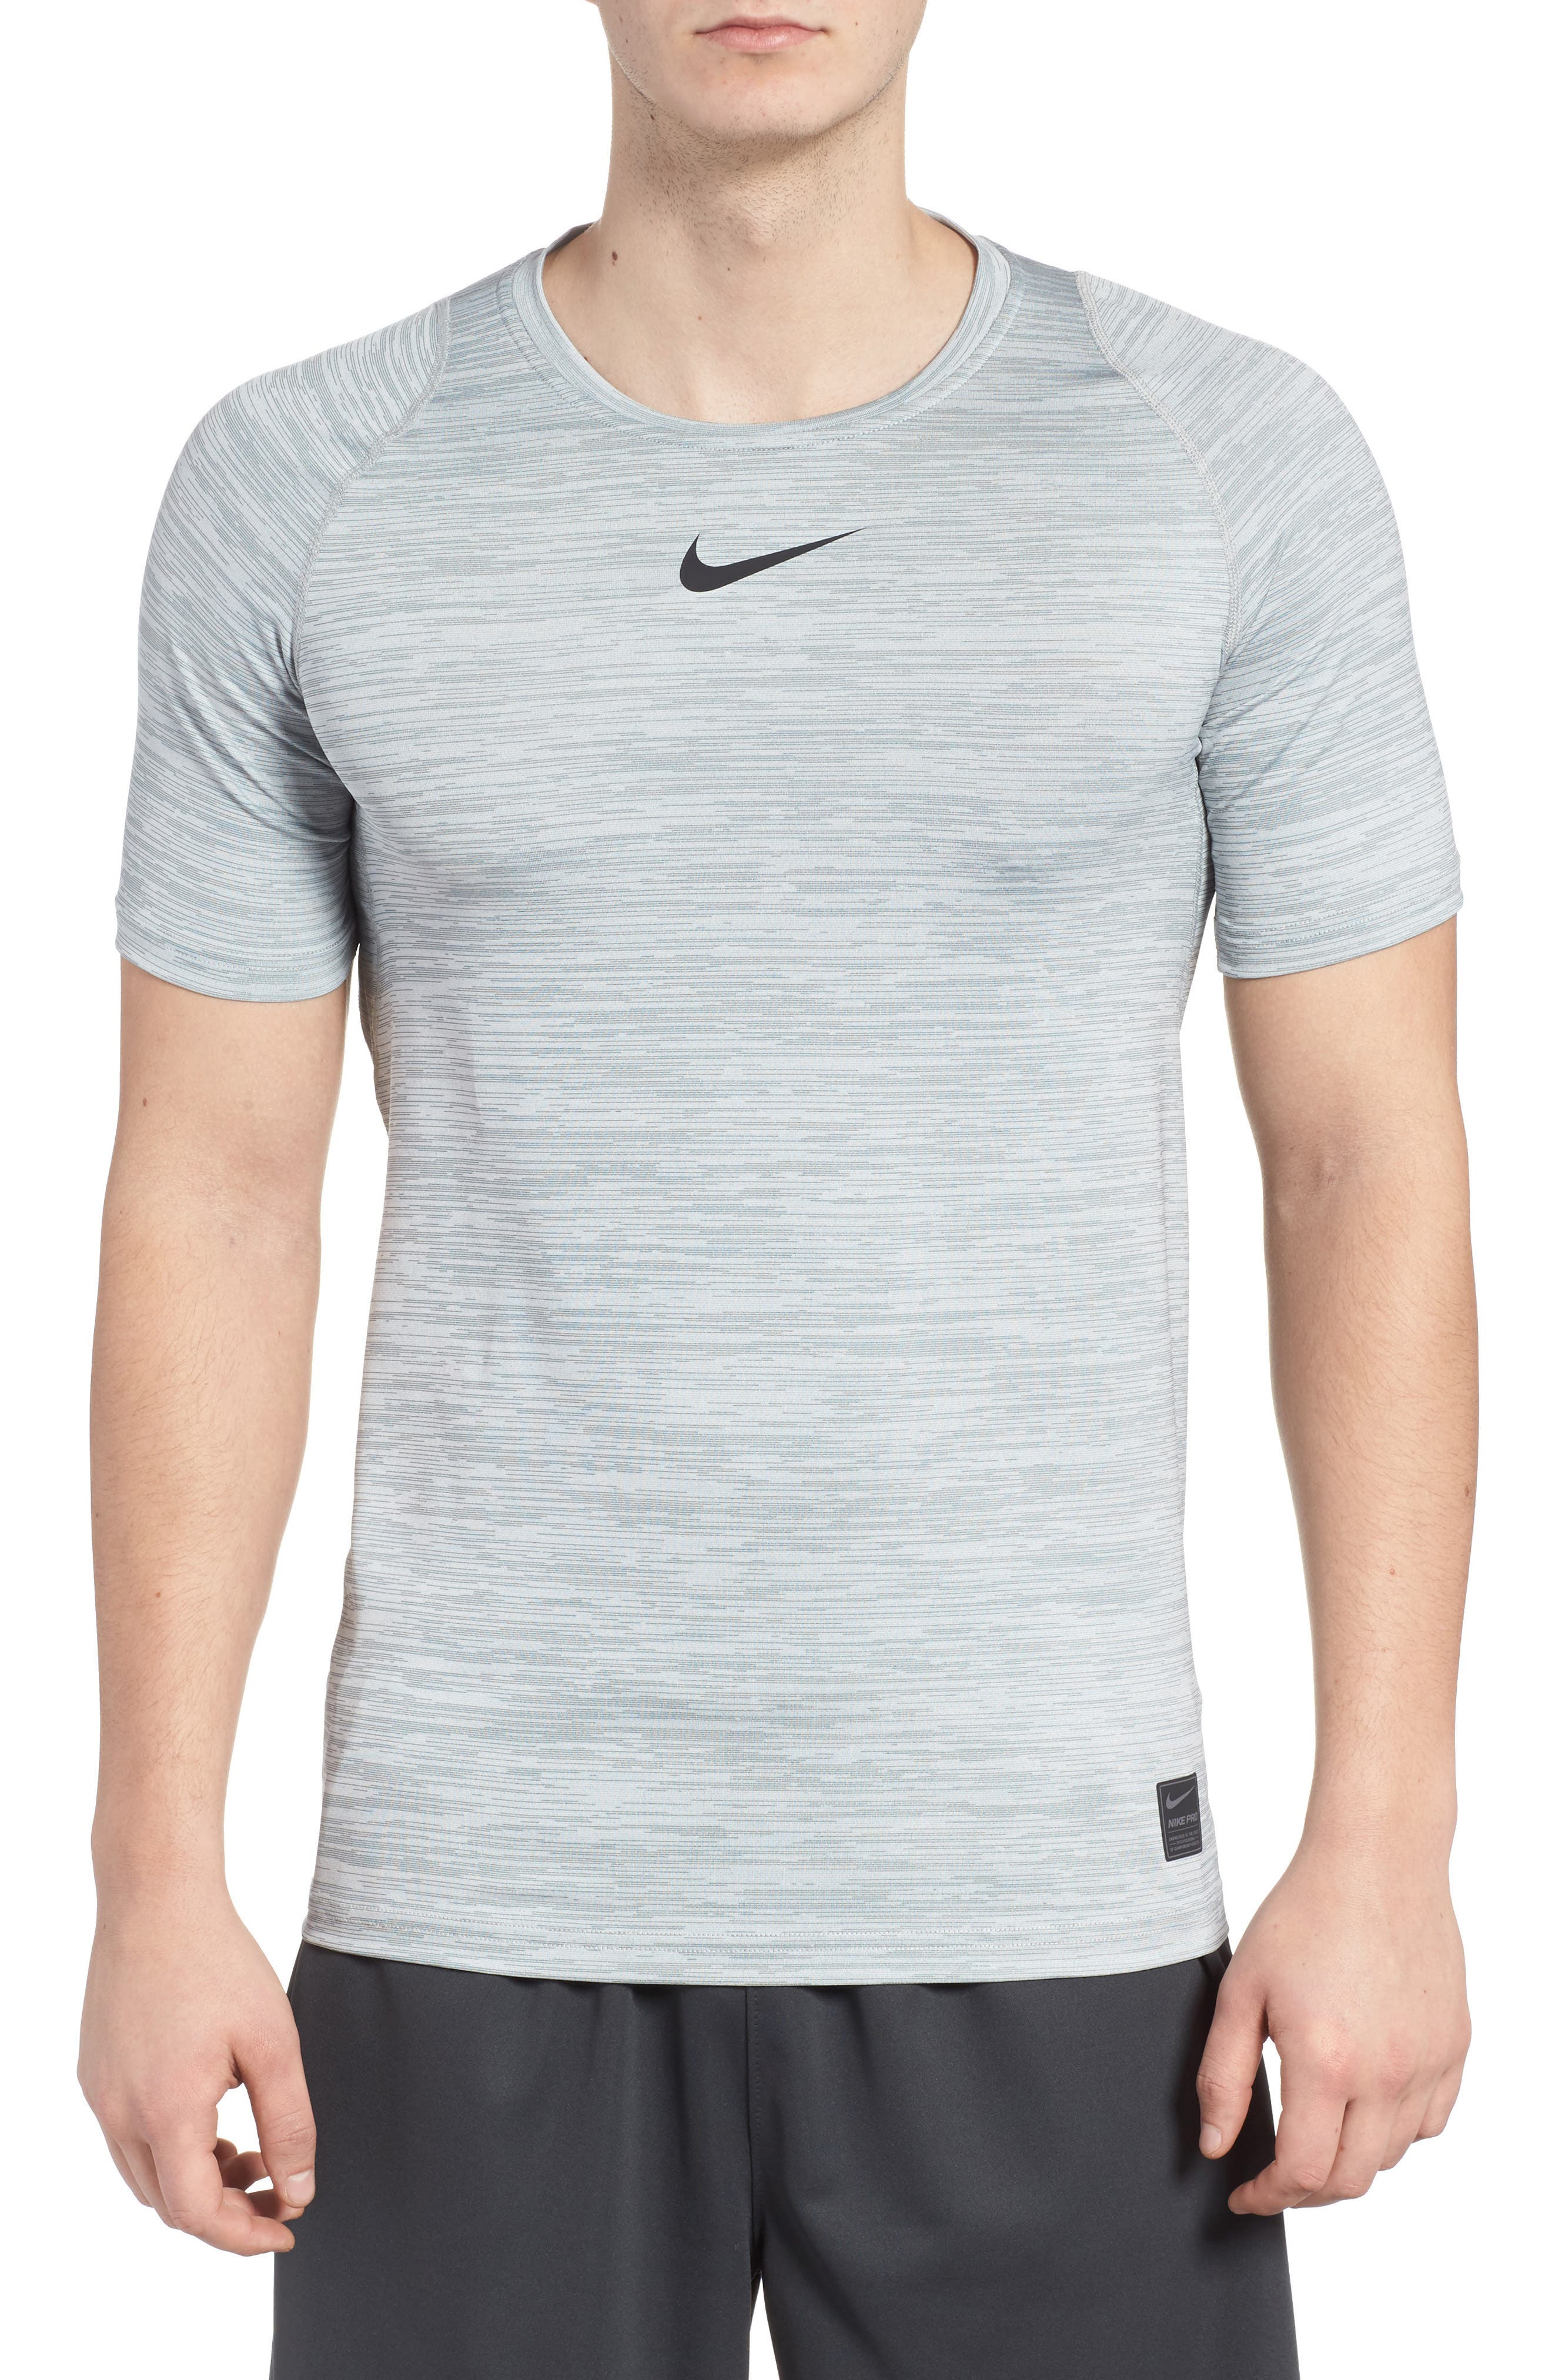 Nike Training Top Crewneck T-Shirt (Regular Retail Price: $28.00)